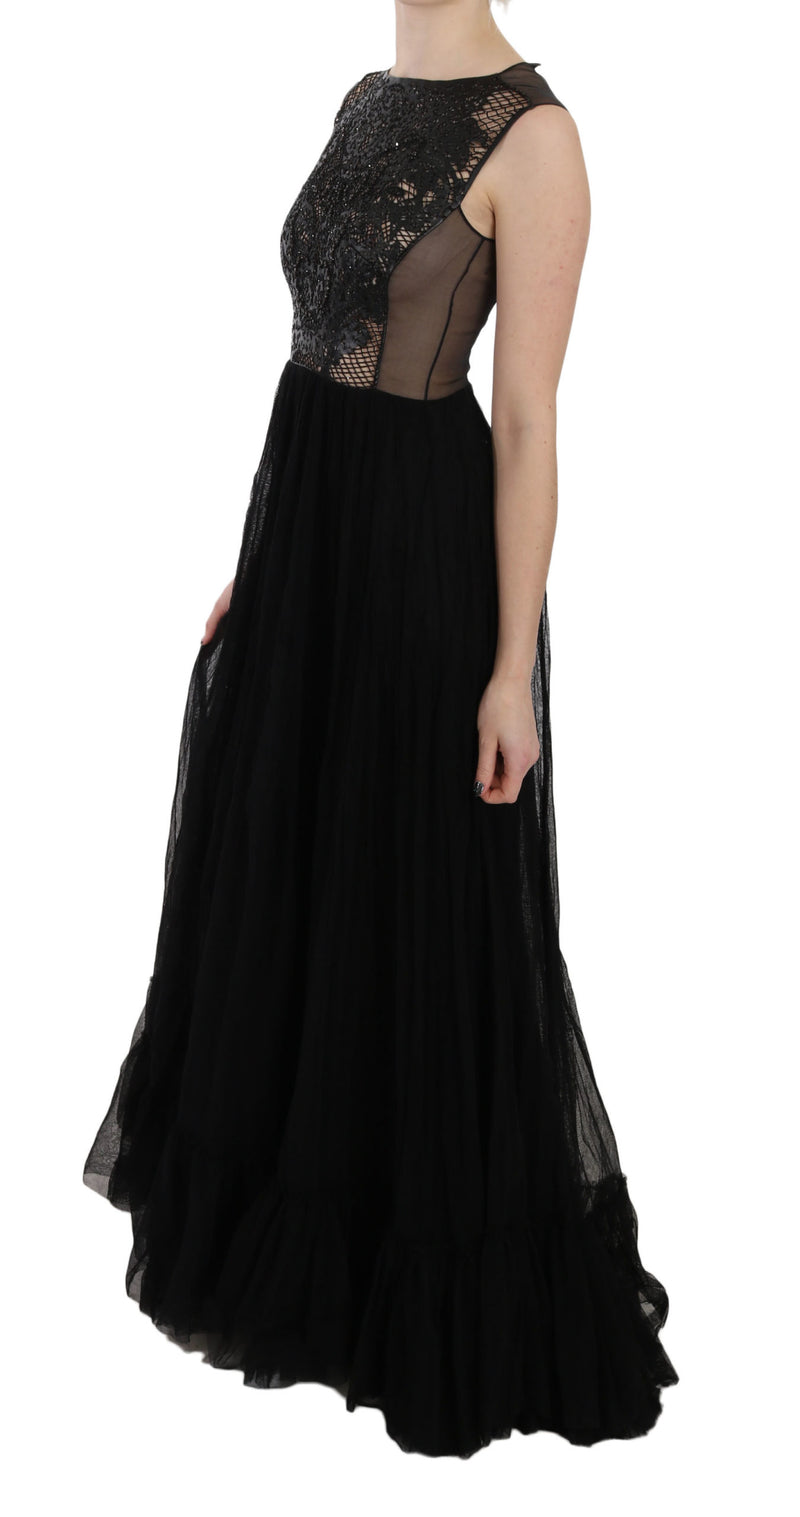 Black Leather A-line Maxi Gown Flare Dress